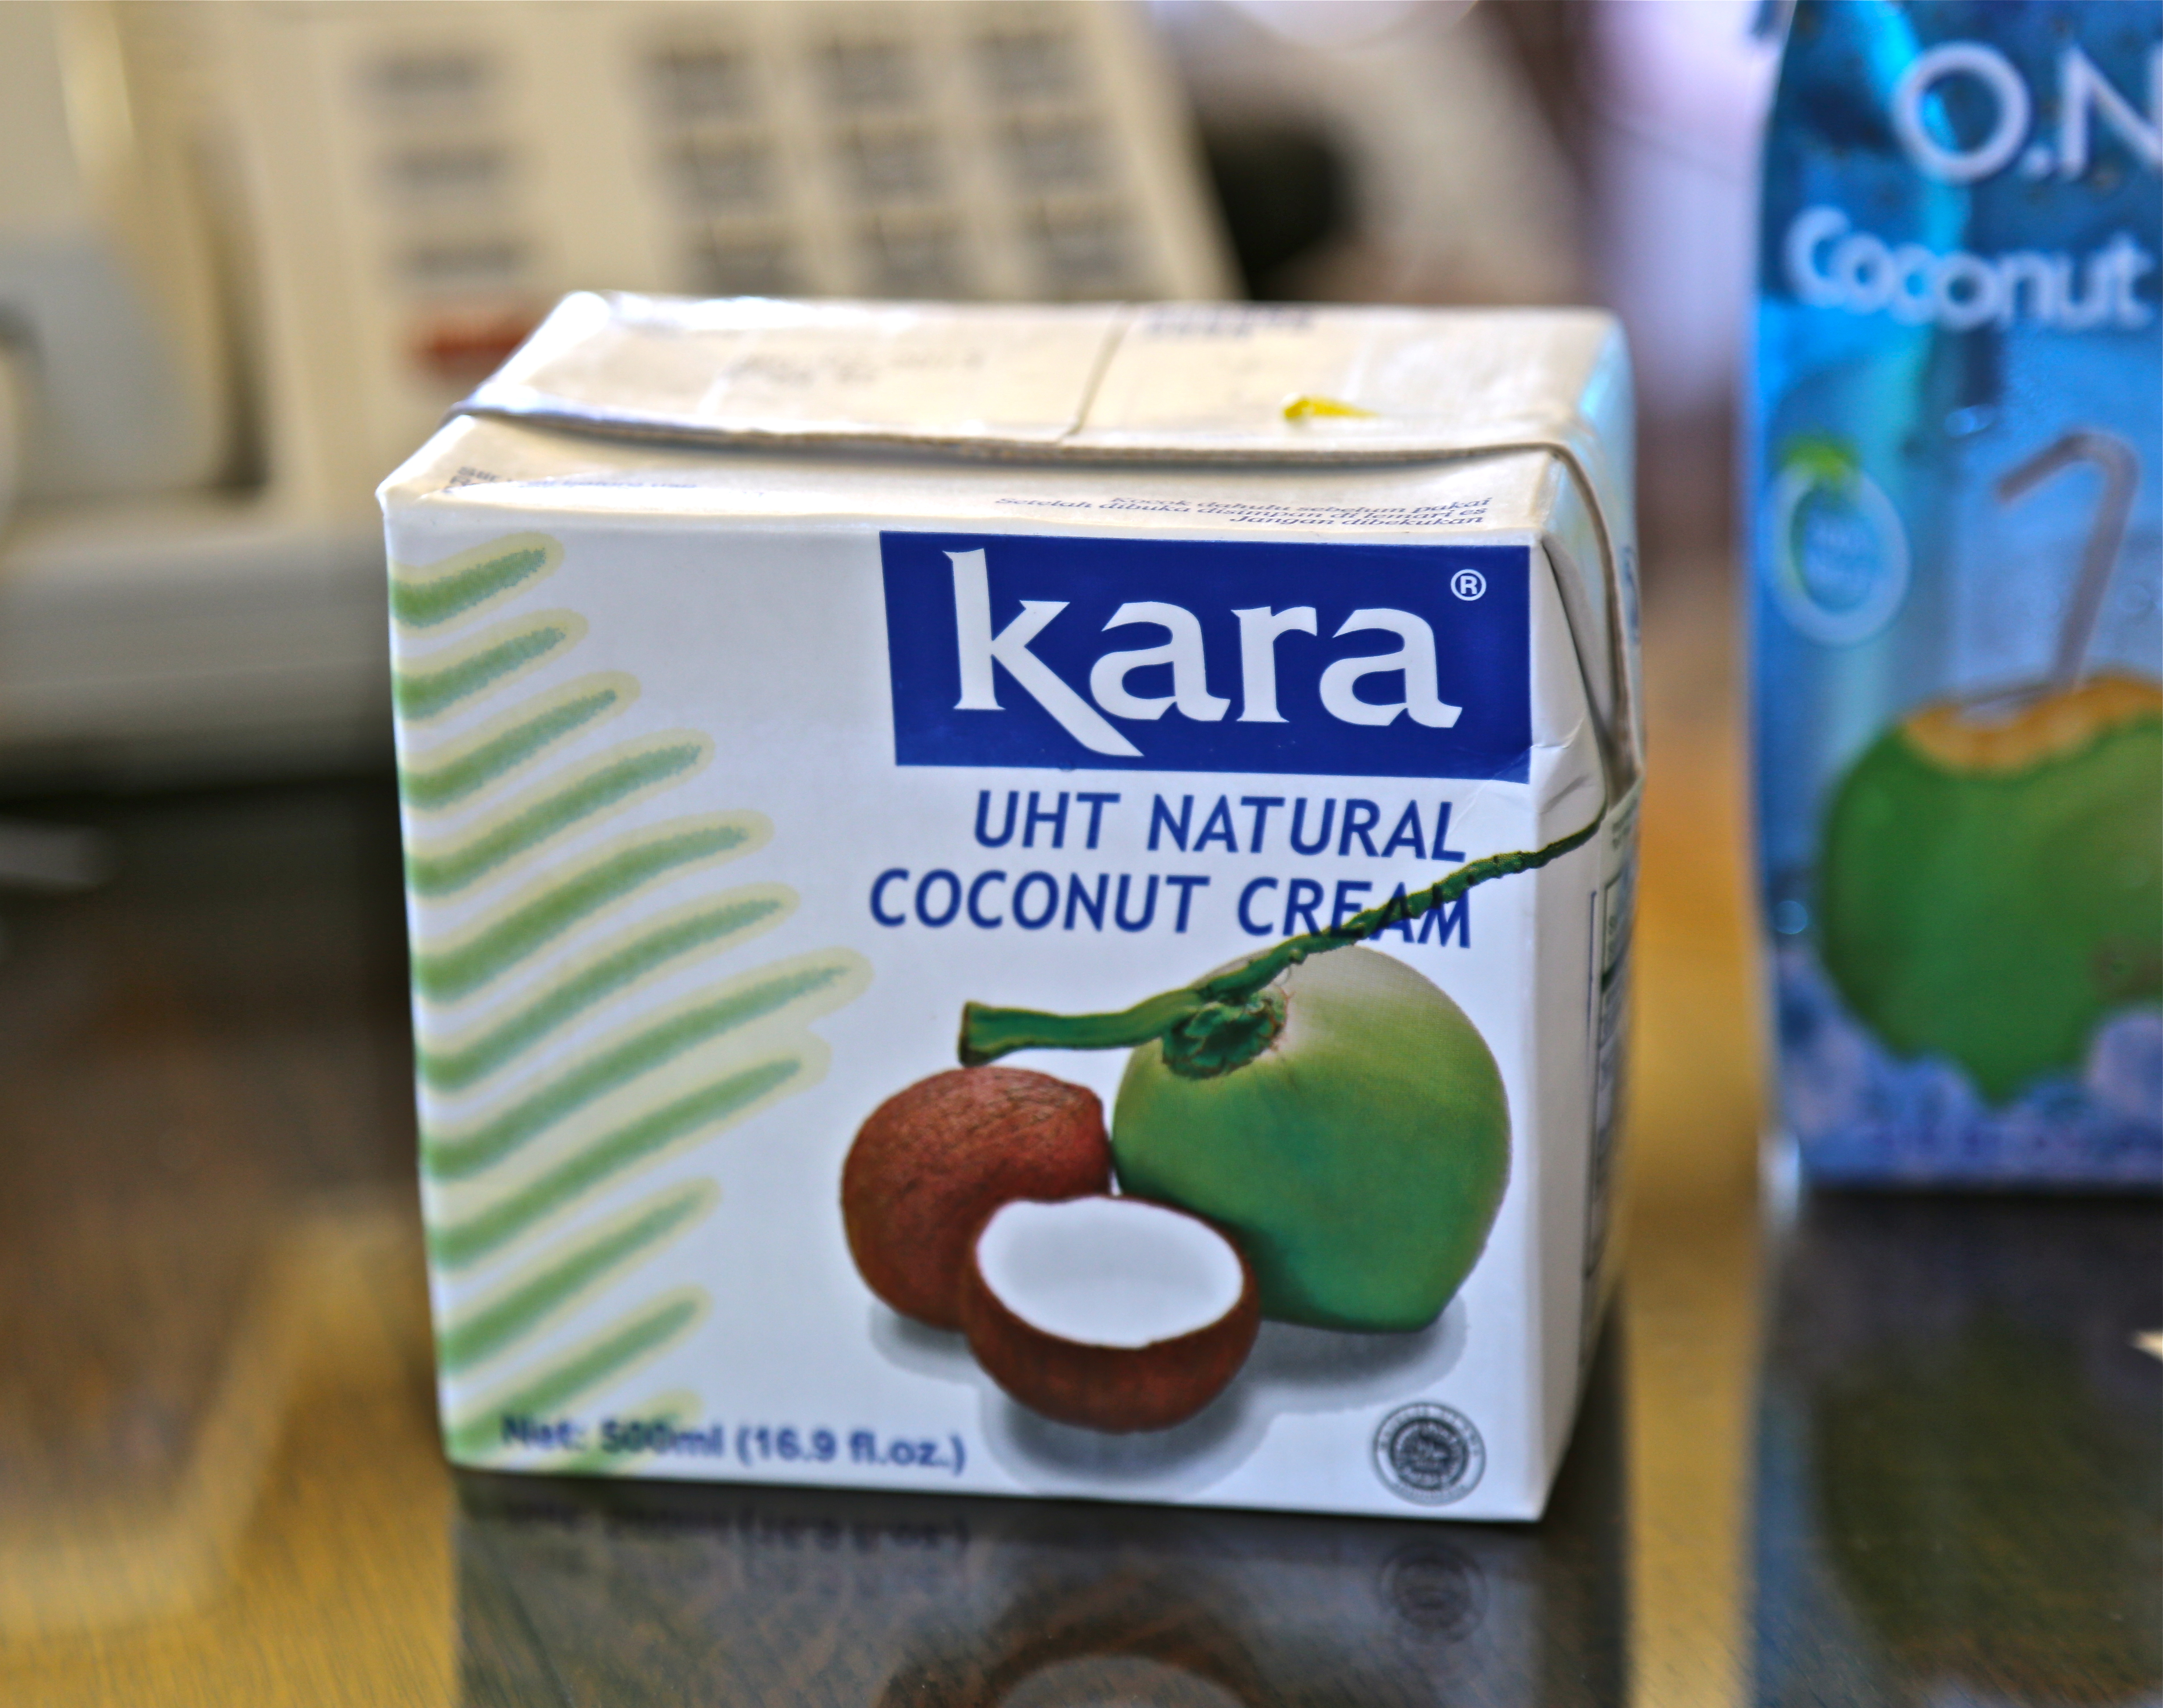 Kara coconut cream